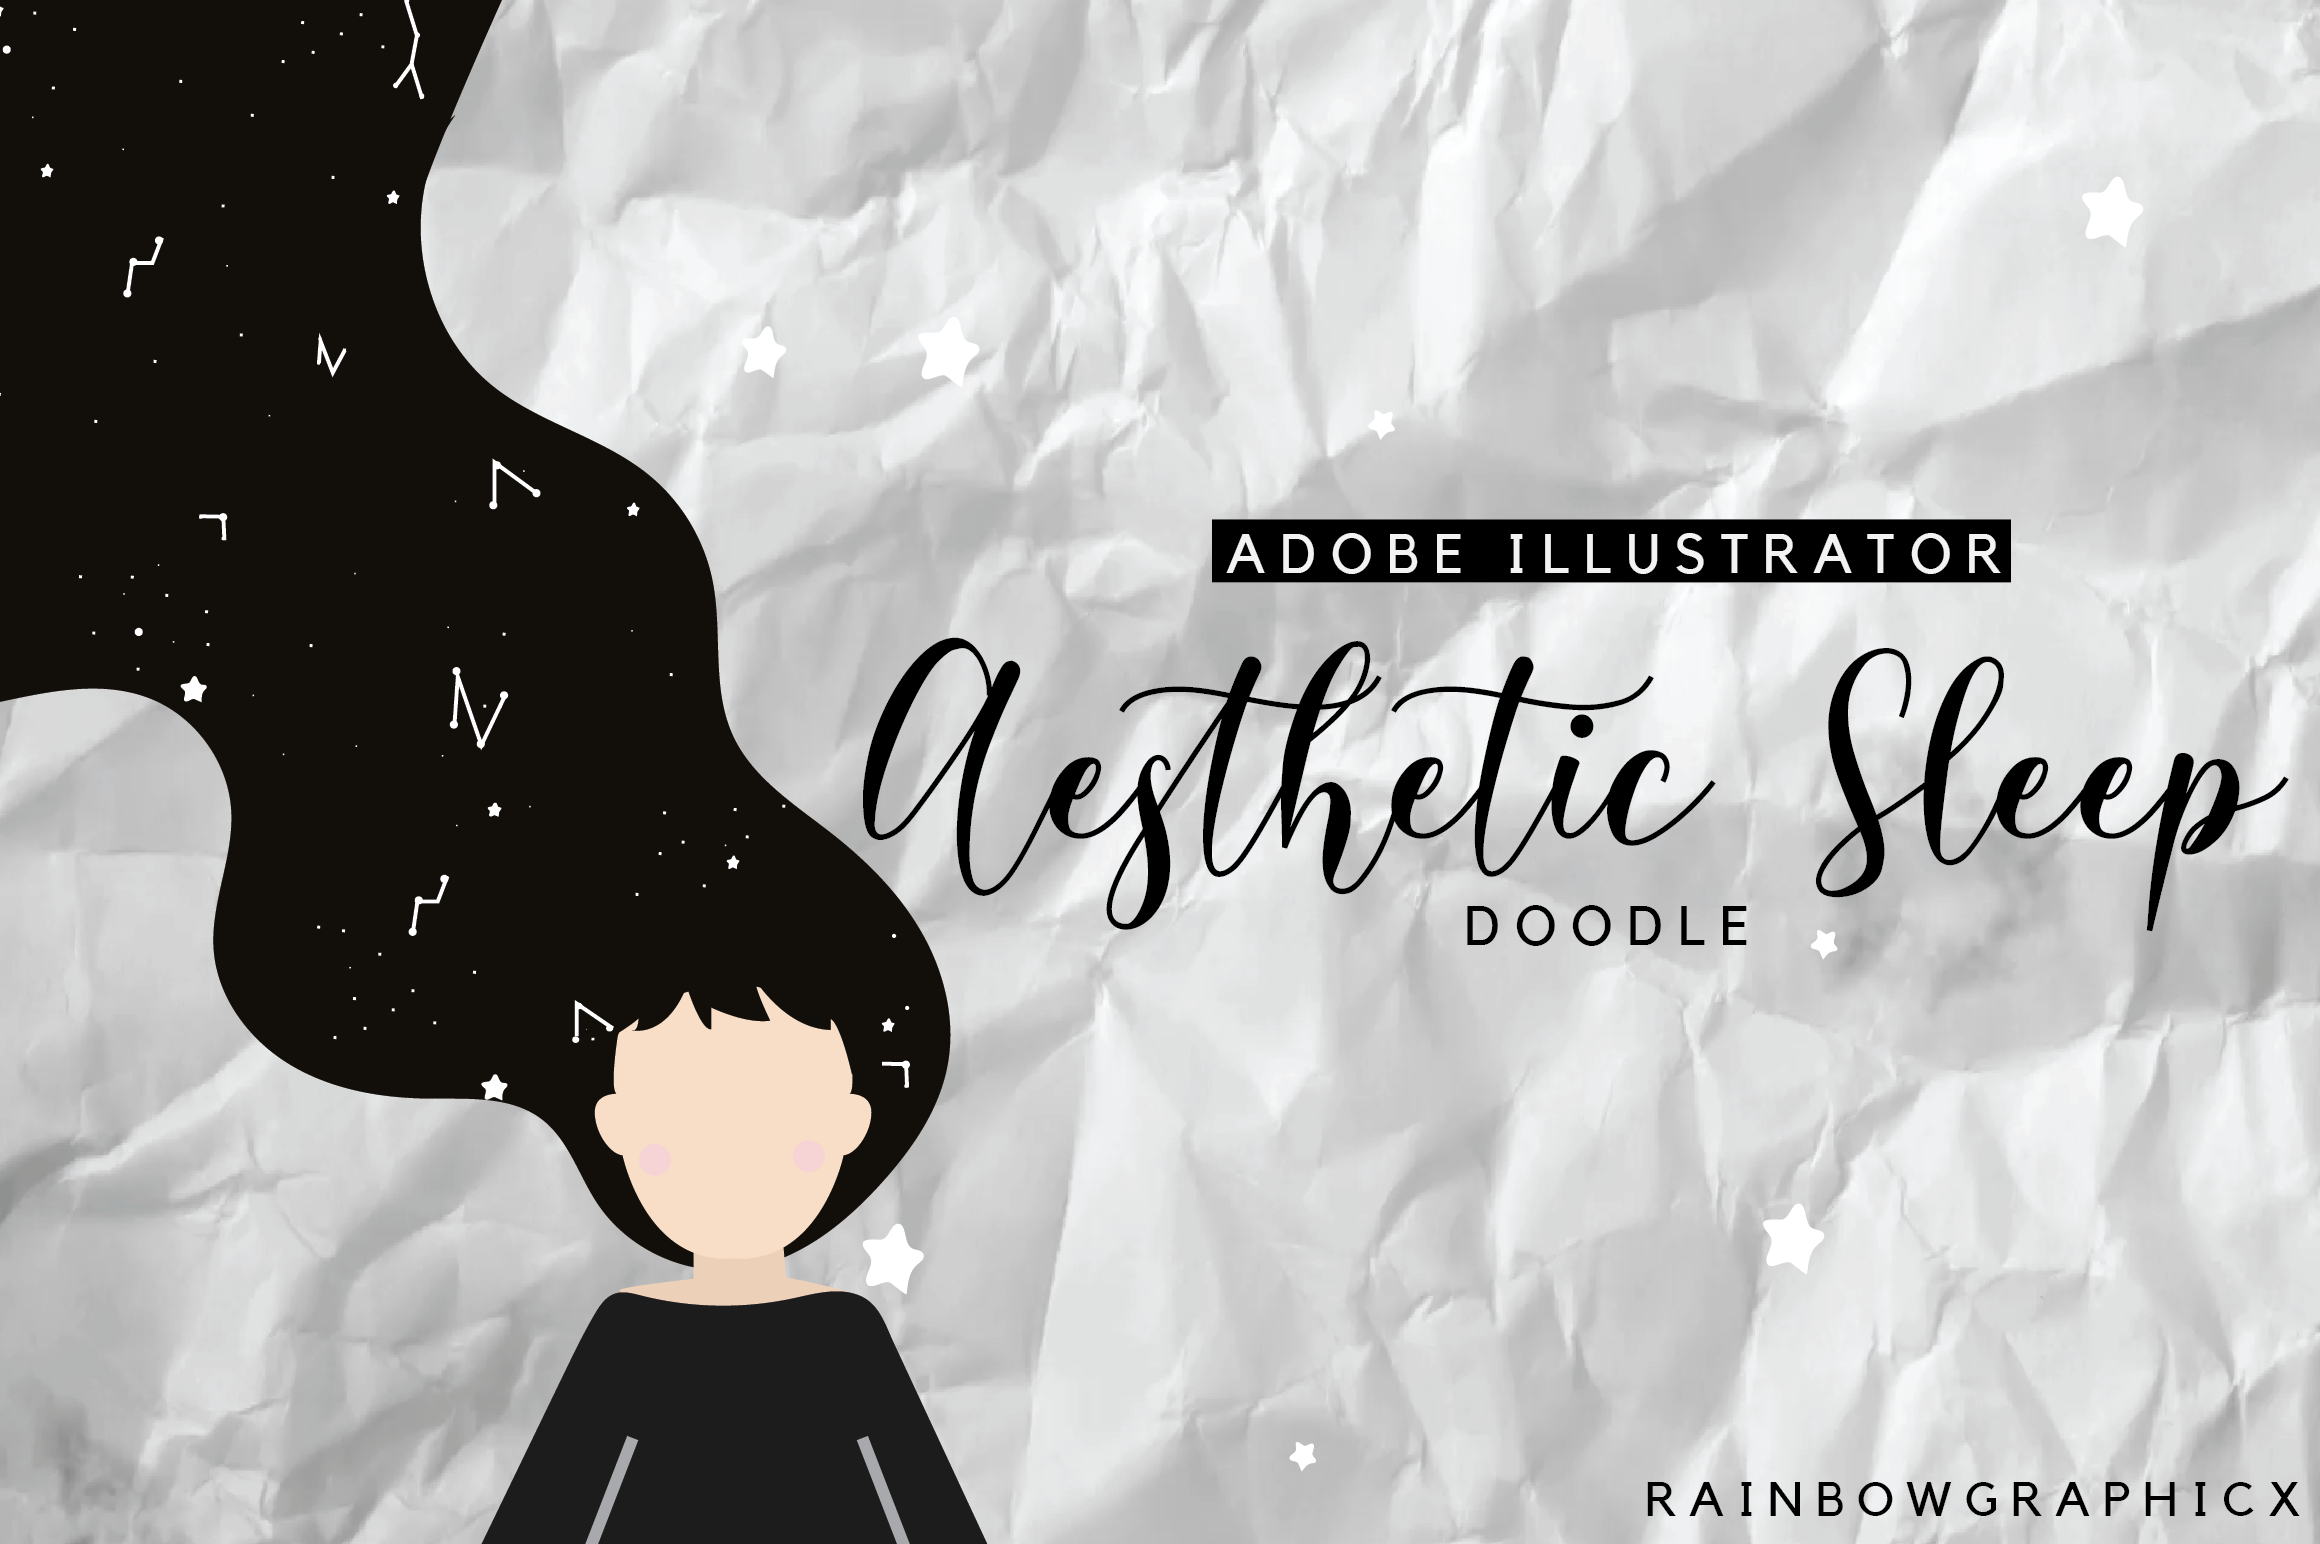 Download Free Aesthetic Sleep Doodle Graphic By Rainbowgraphicx Creative Fabrica for Cricut Explore, Silhouette and other cutting machines.